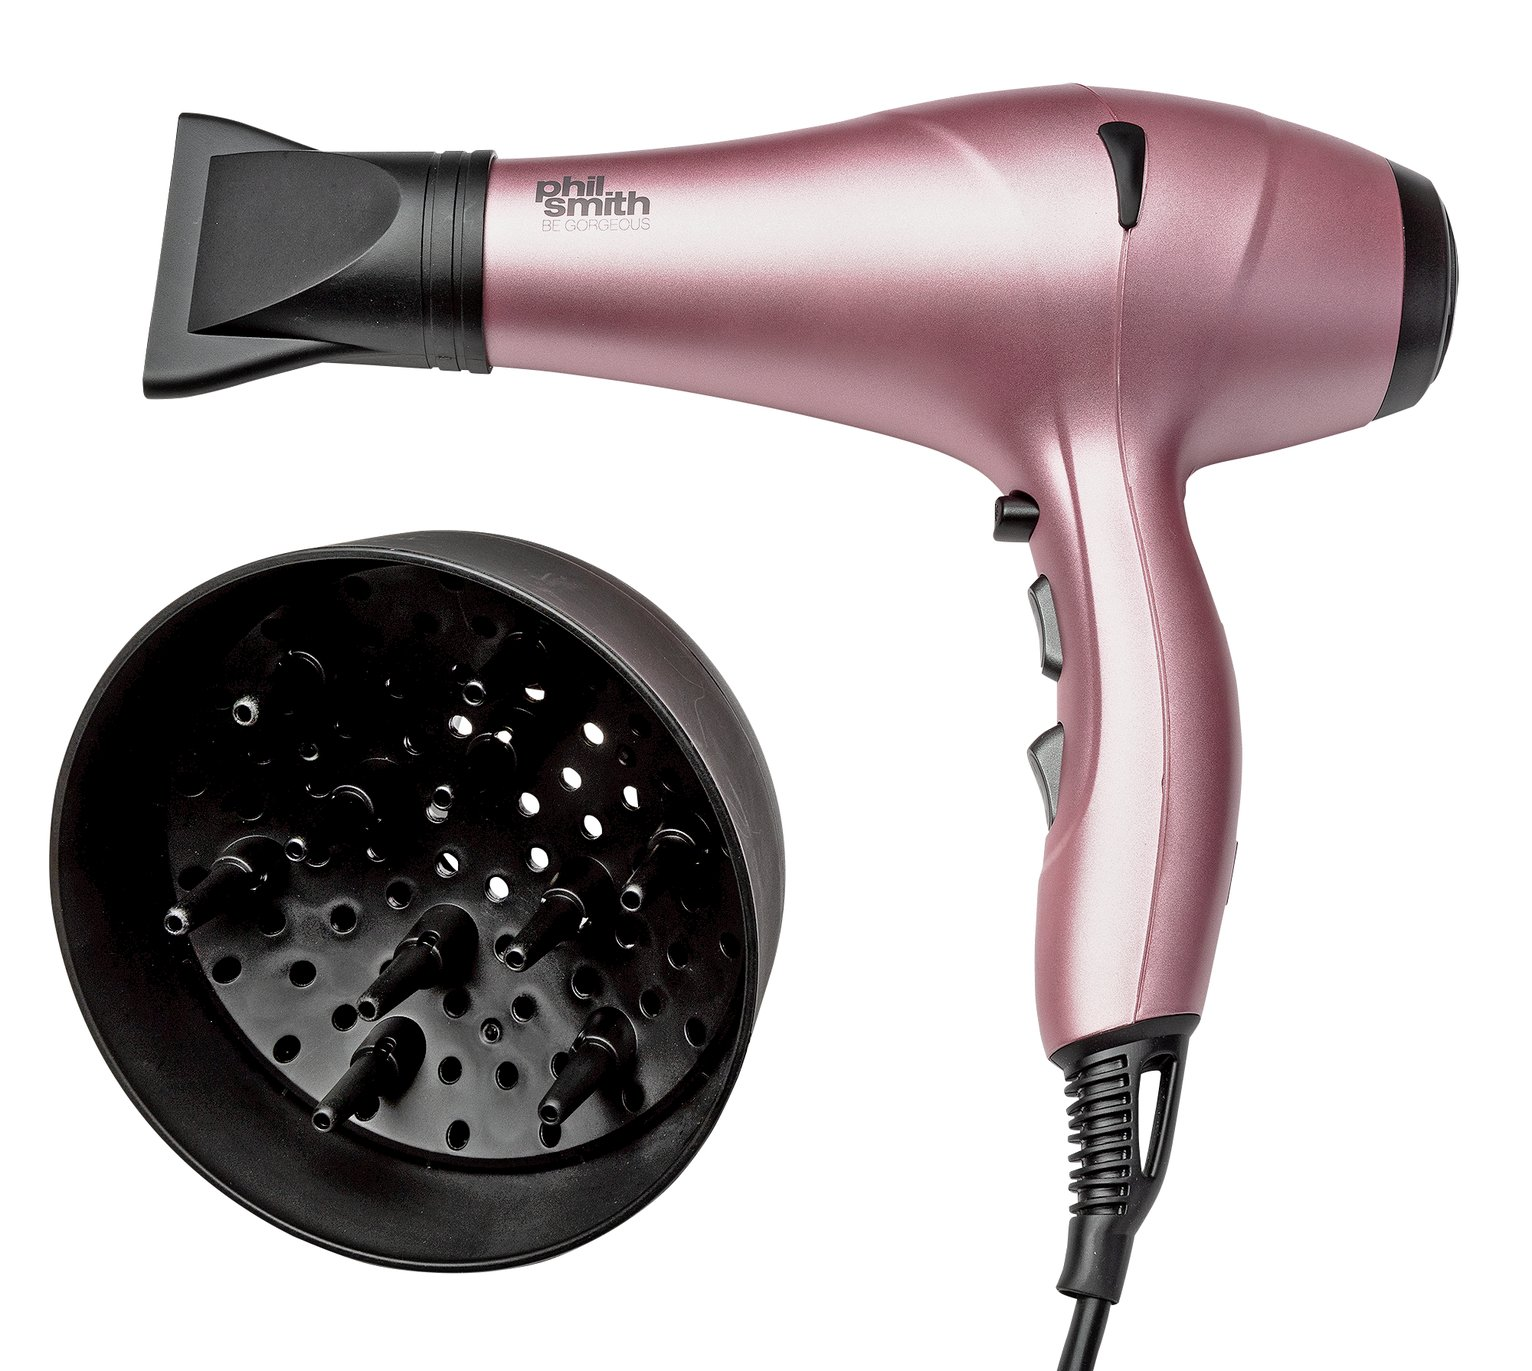 Phil Smith Hair Dryer with Diffuser